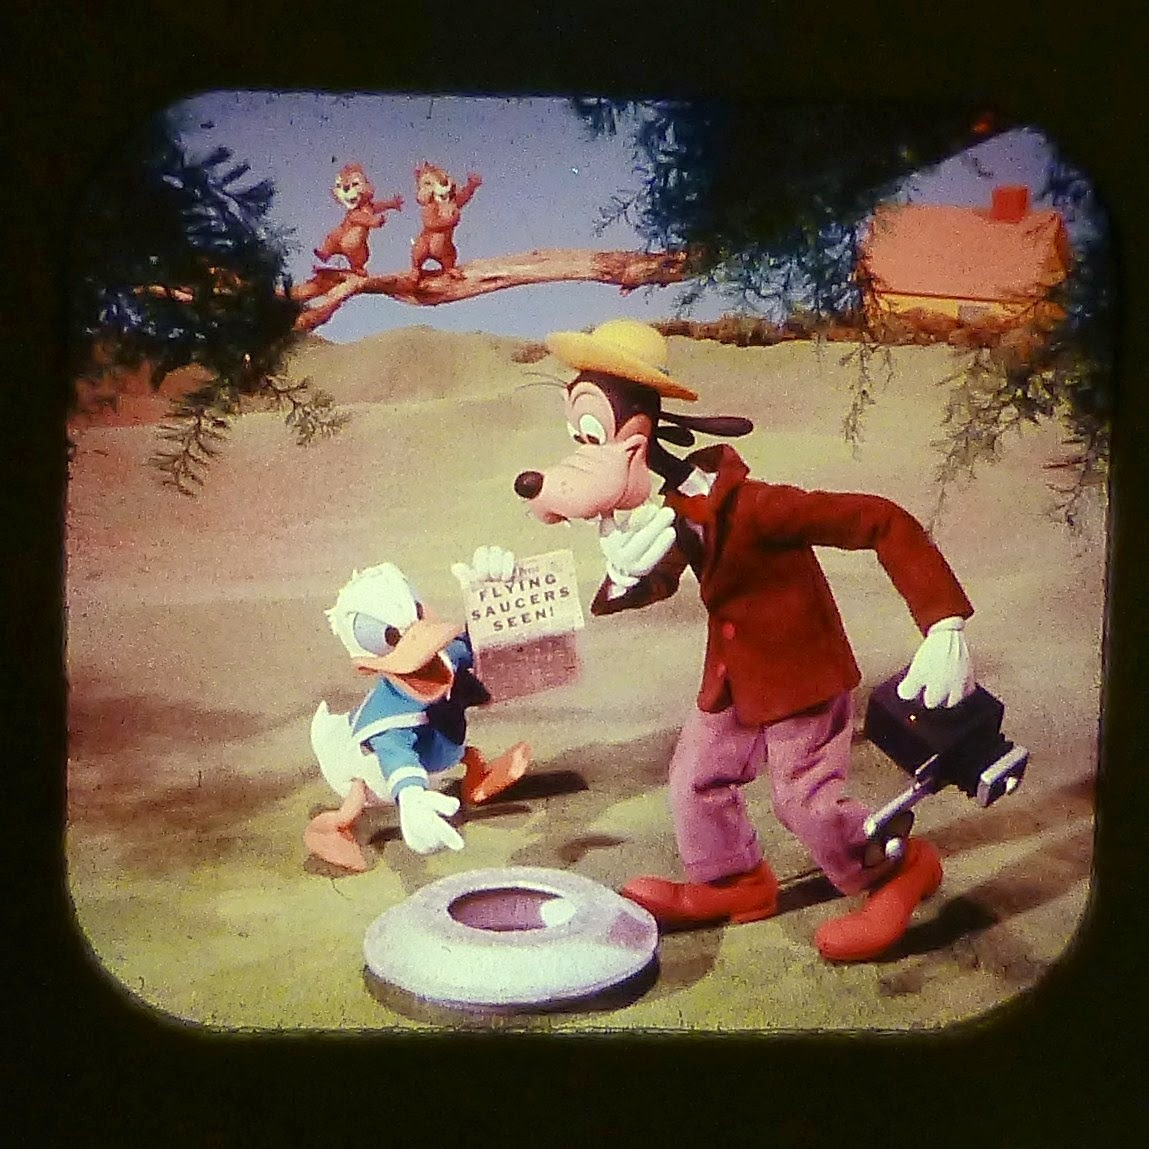 DONALD DUCK IN FLYING SAUCER PILOTS VIEW MASTER SCANS